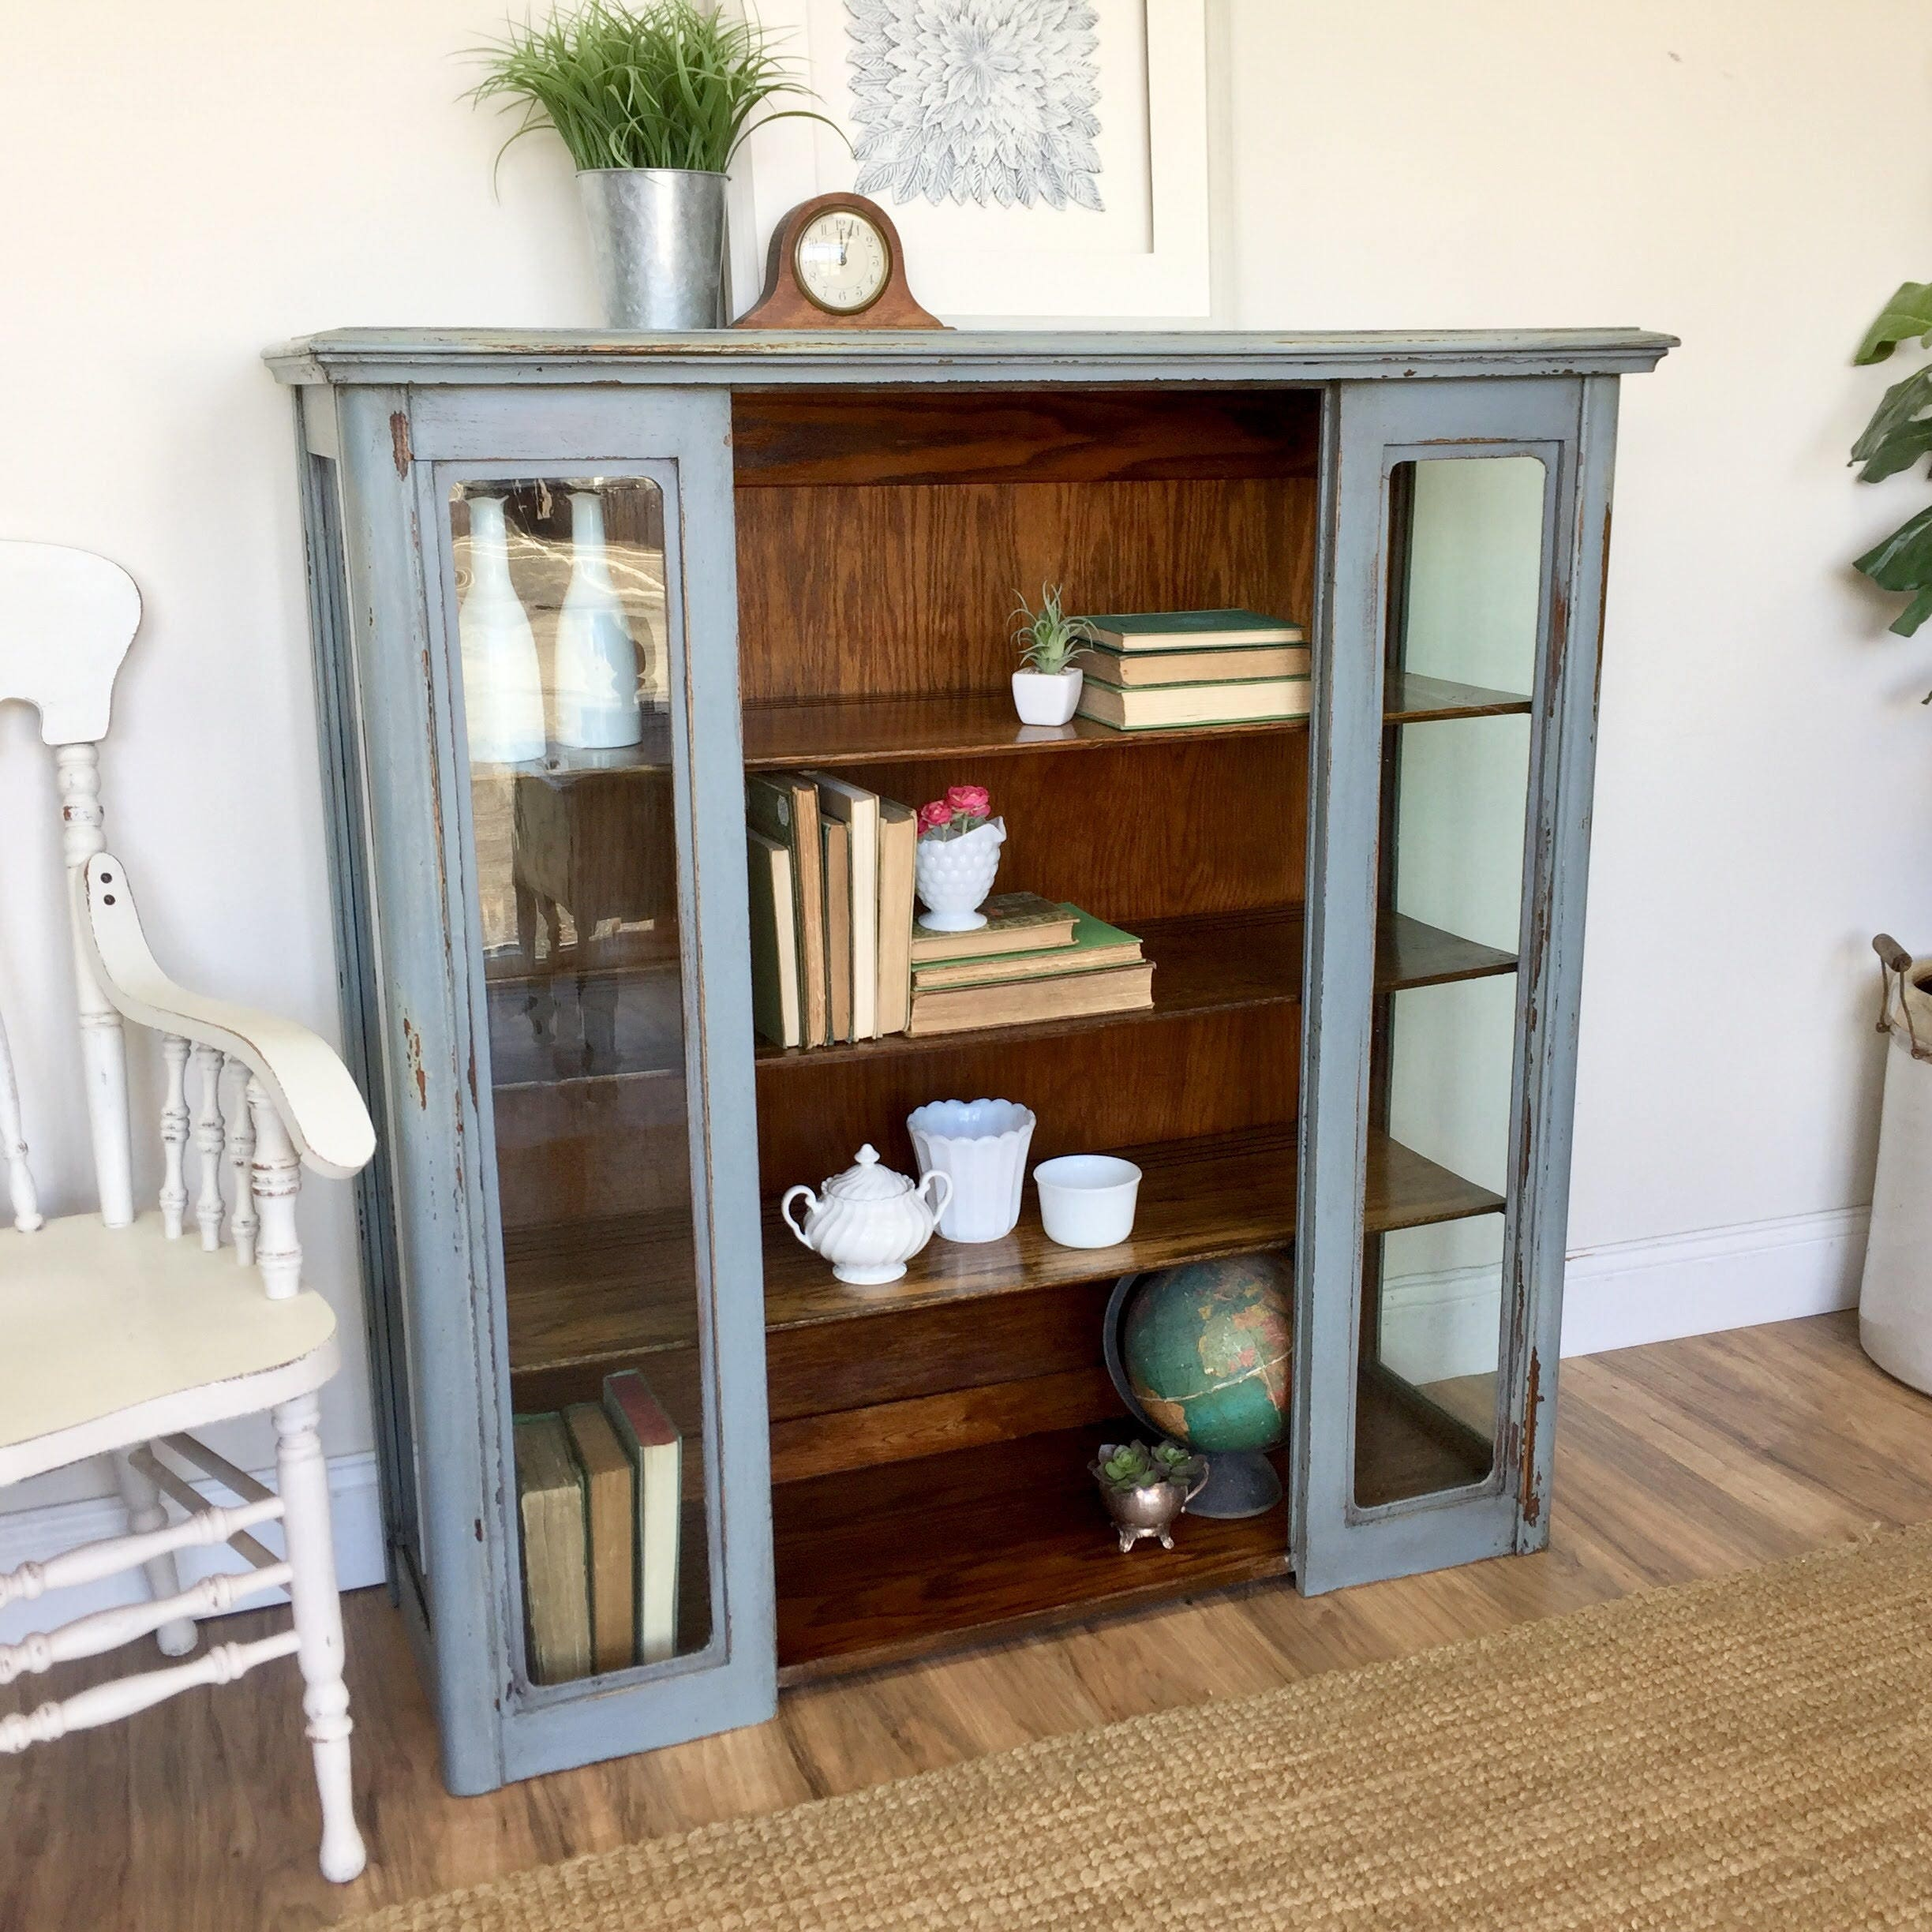 Painted Bookcase   Farmhouse Furniture   Rustic Bookcase   Glass Front  Cabinet   Antique Bookshelf, Vintage Furniture, China Display Cabinet